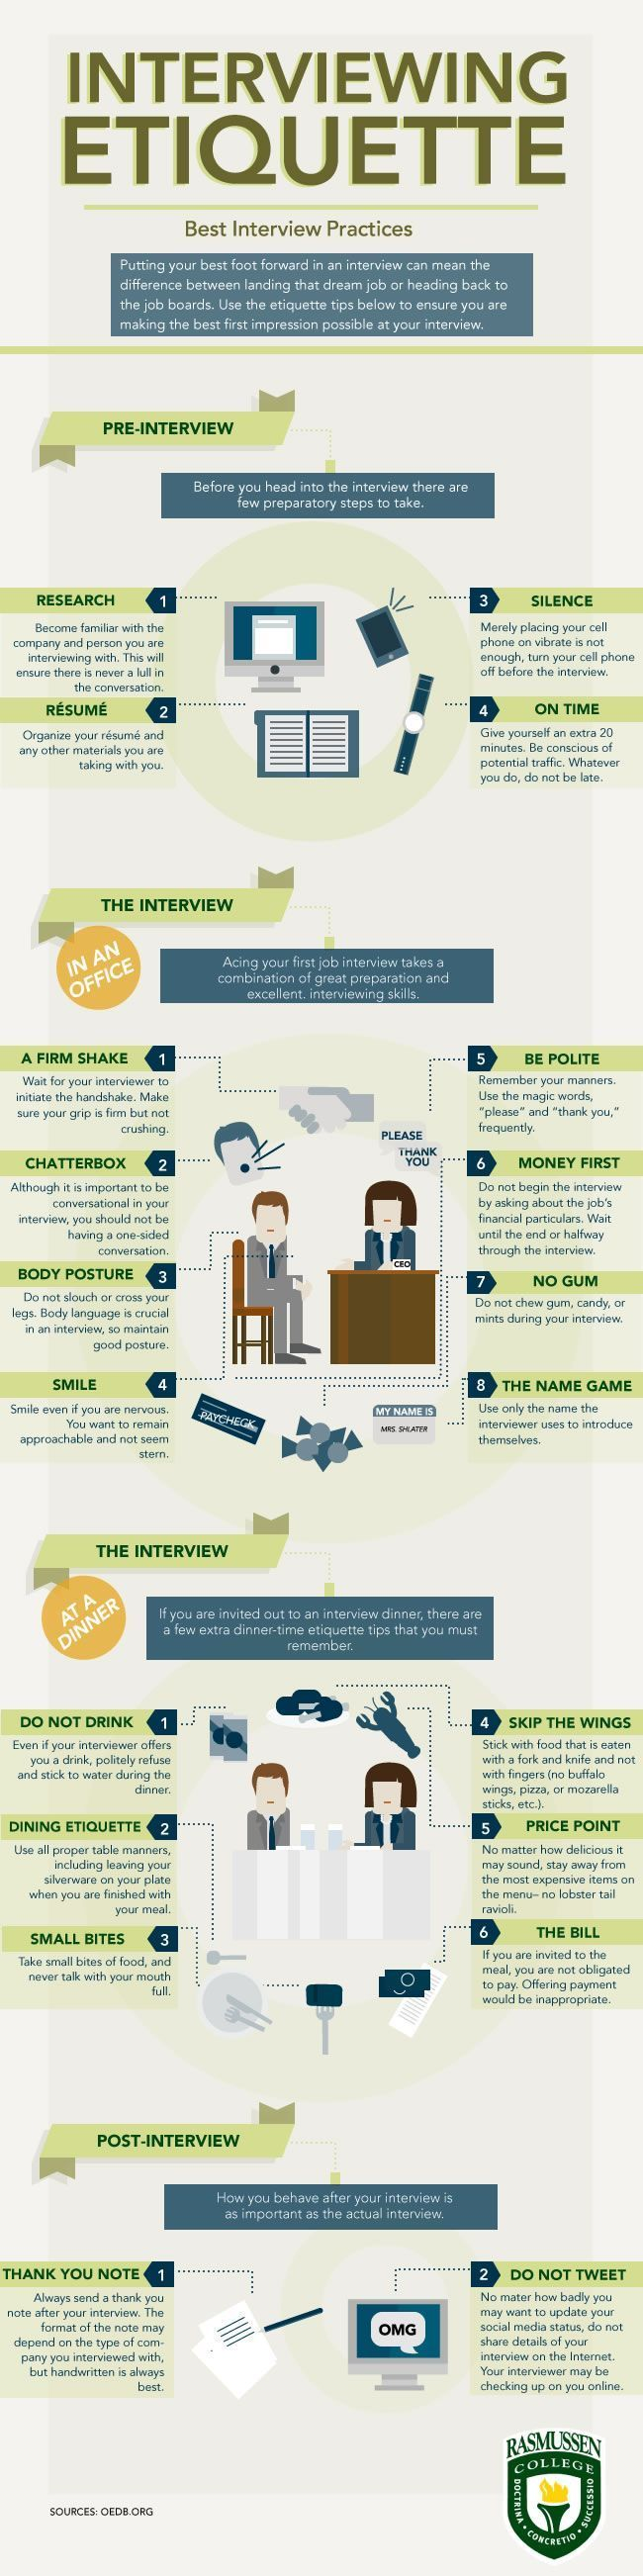 job interviews archives your employment solutions interviewing etiquette put your best foot forward